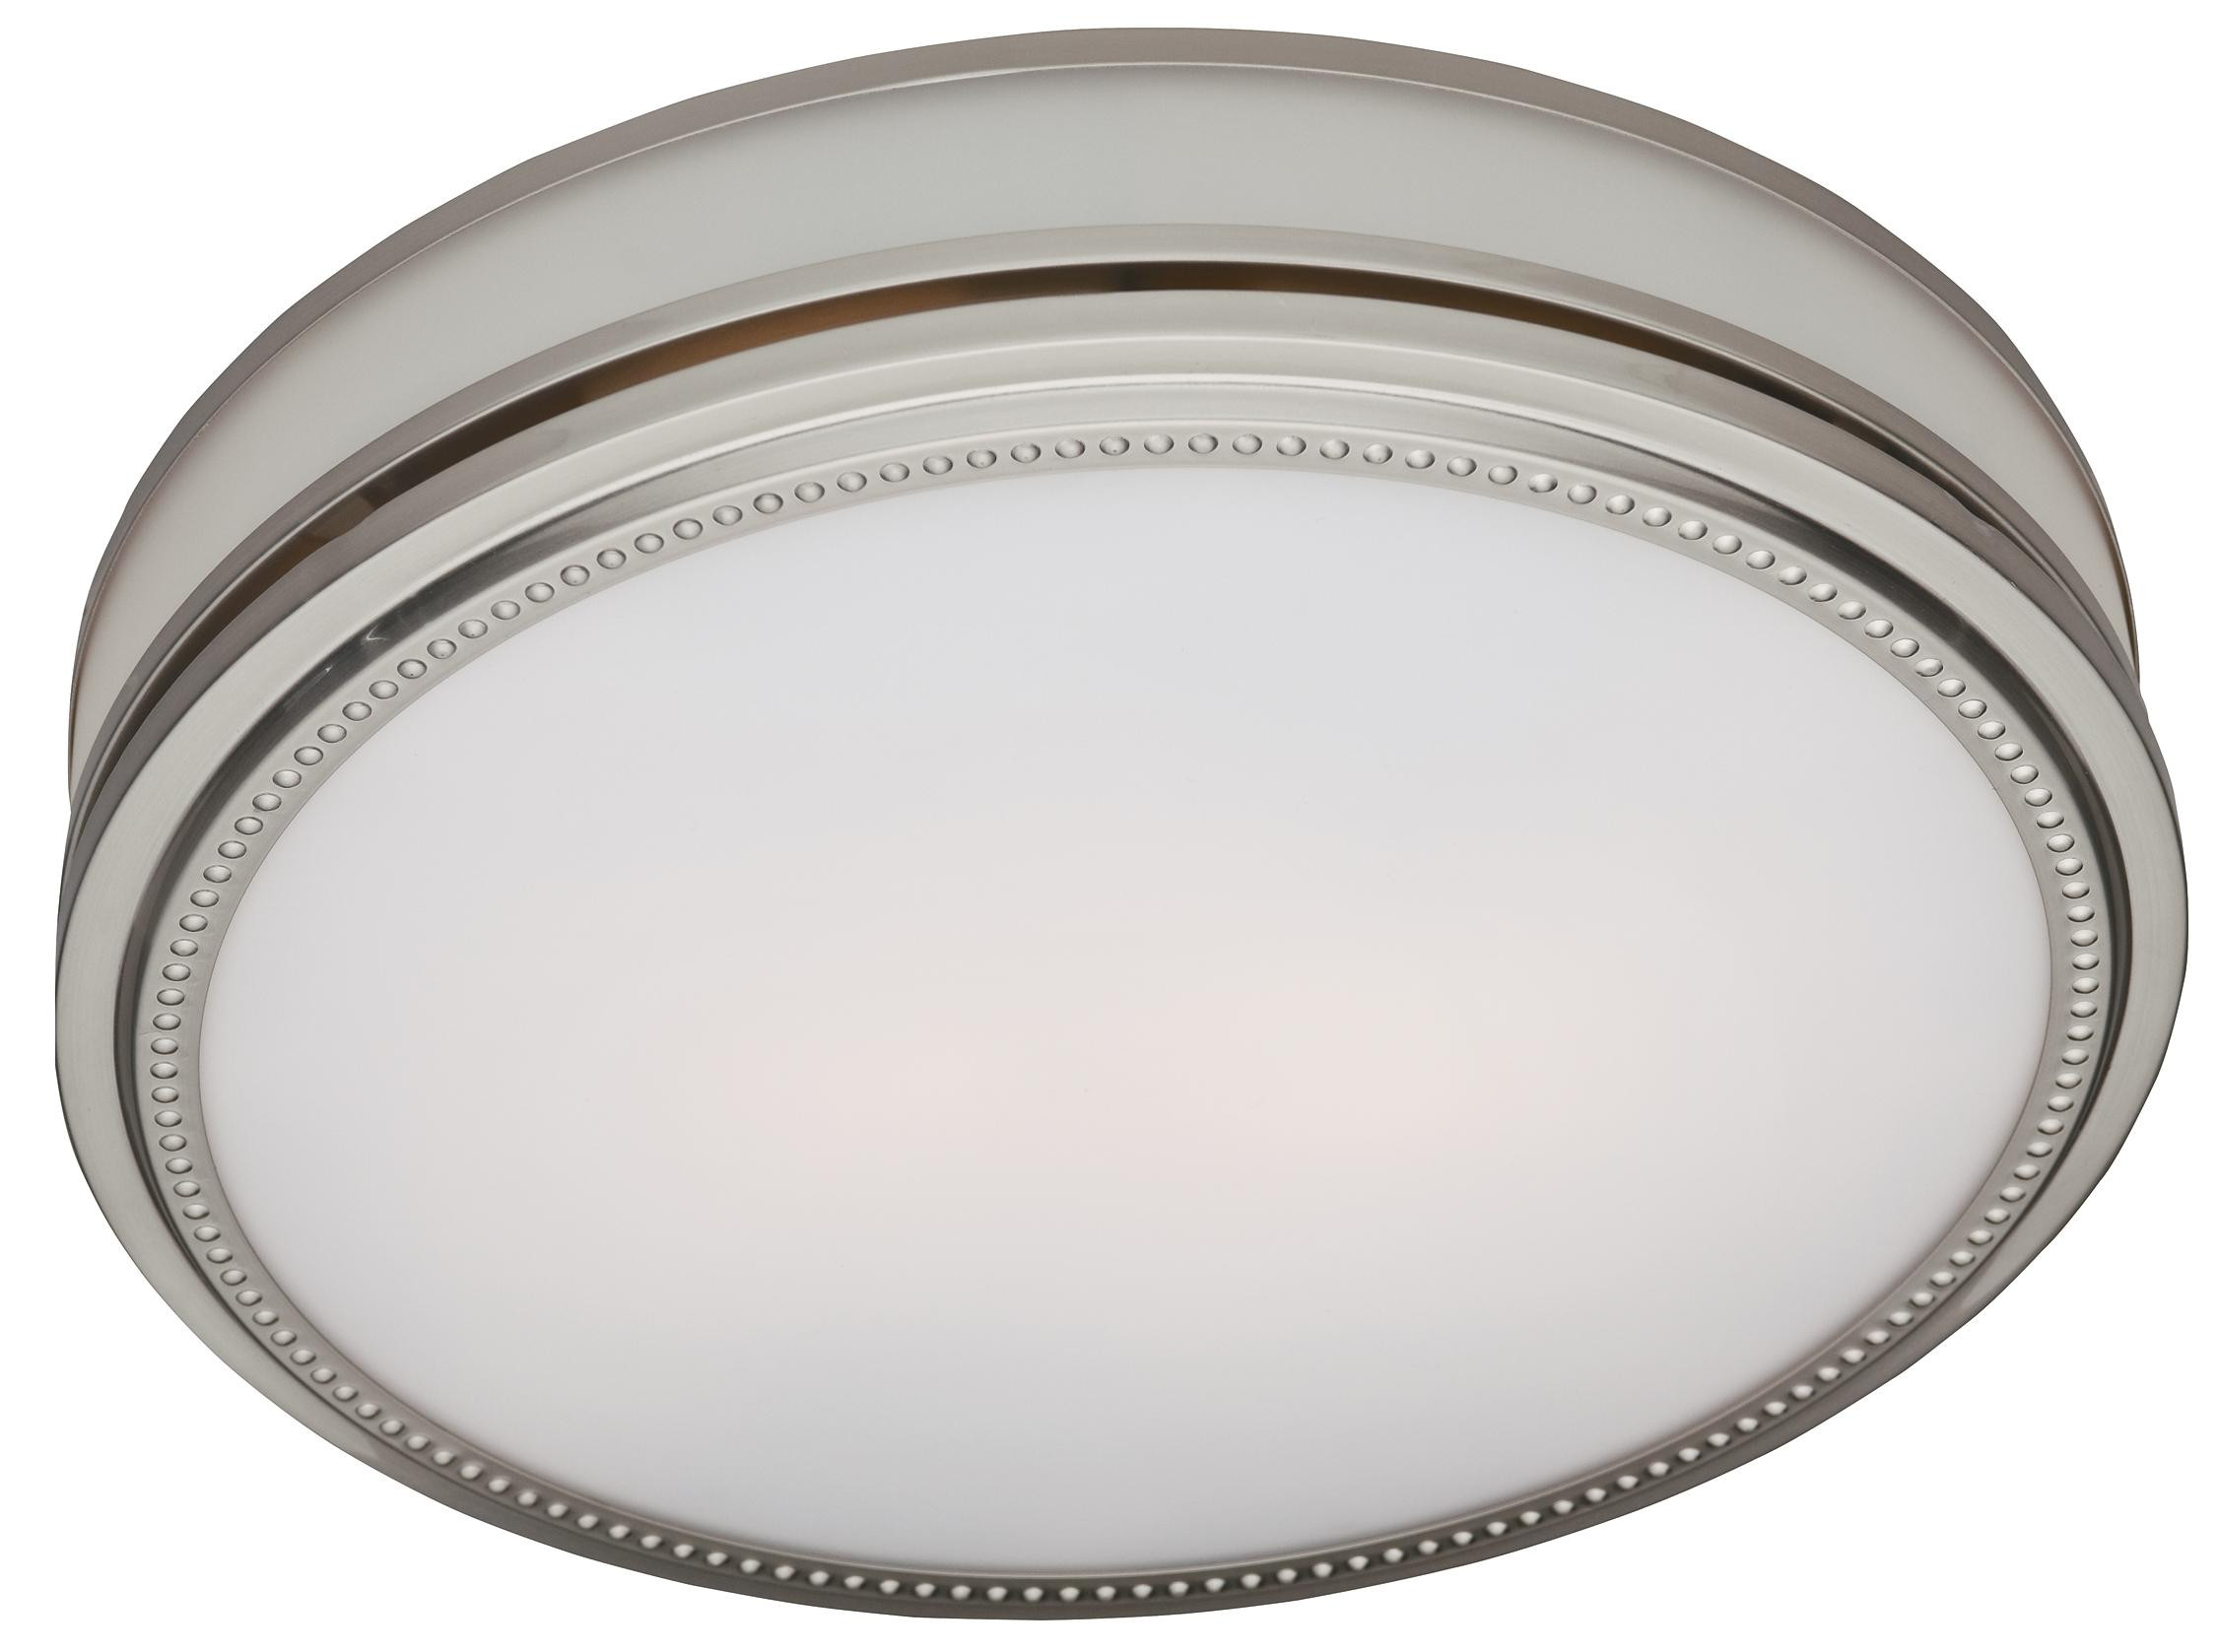 Best ideas about Bathroom Vent Fan With Light . Save or Pin Hunter Ventilation Riazzi Bathroom Exhaust Fan with Now.